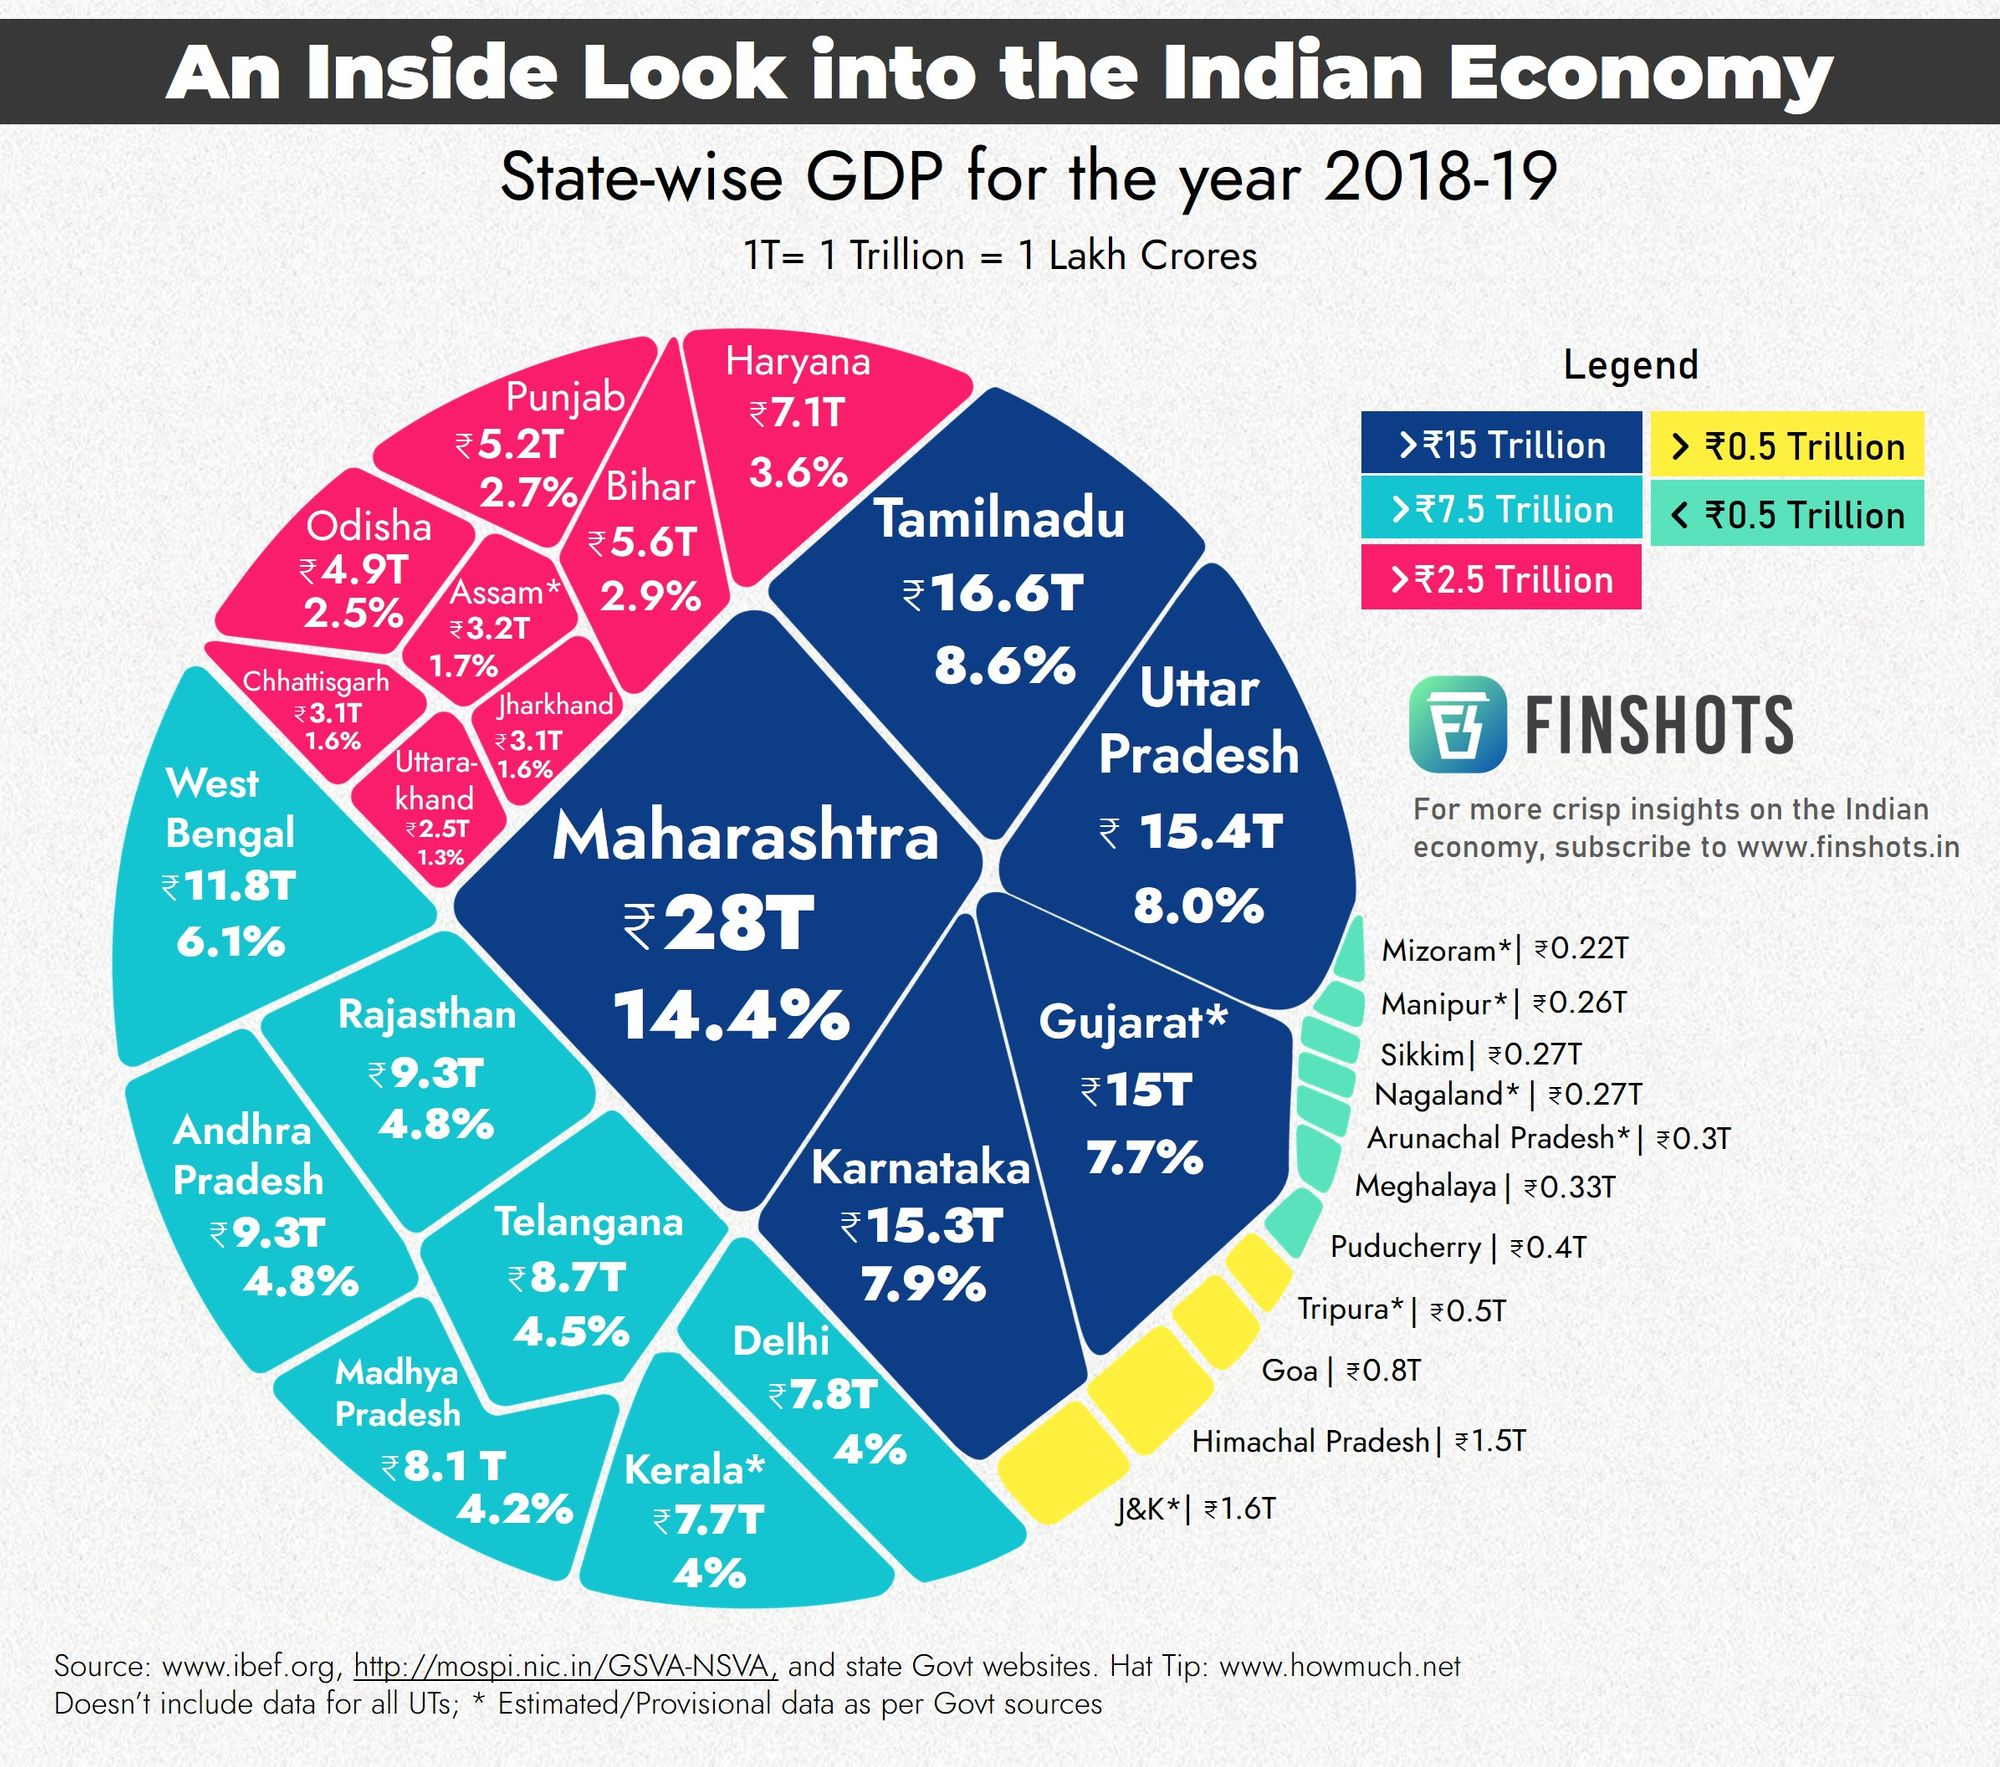 An Inside look into Indian Economy